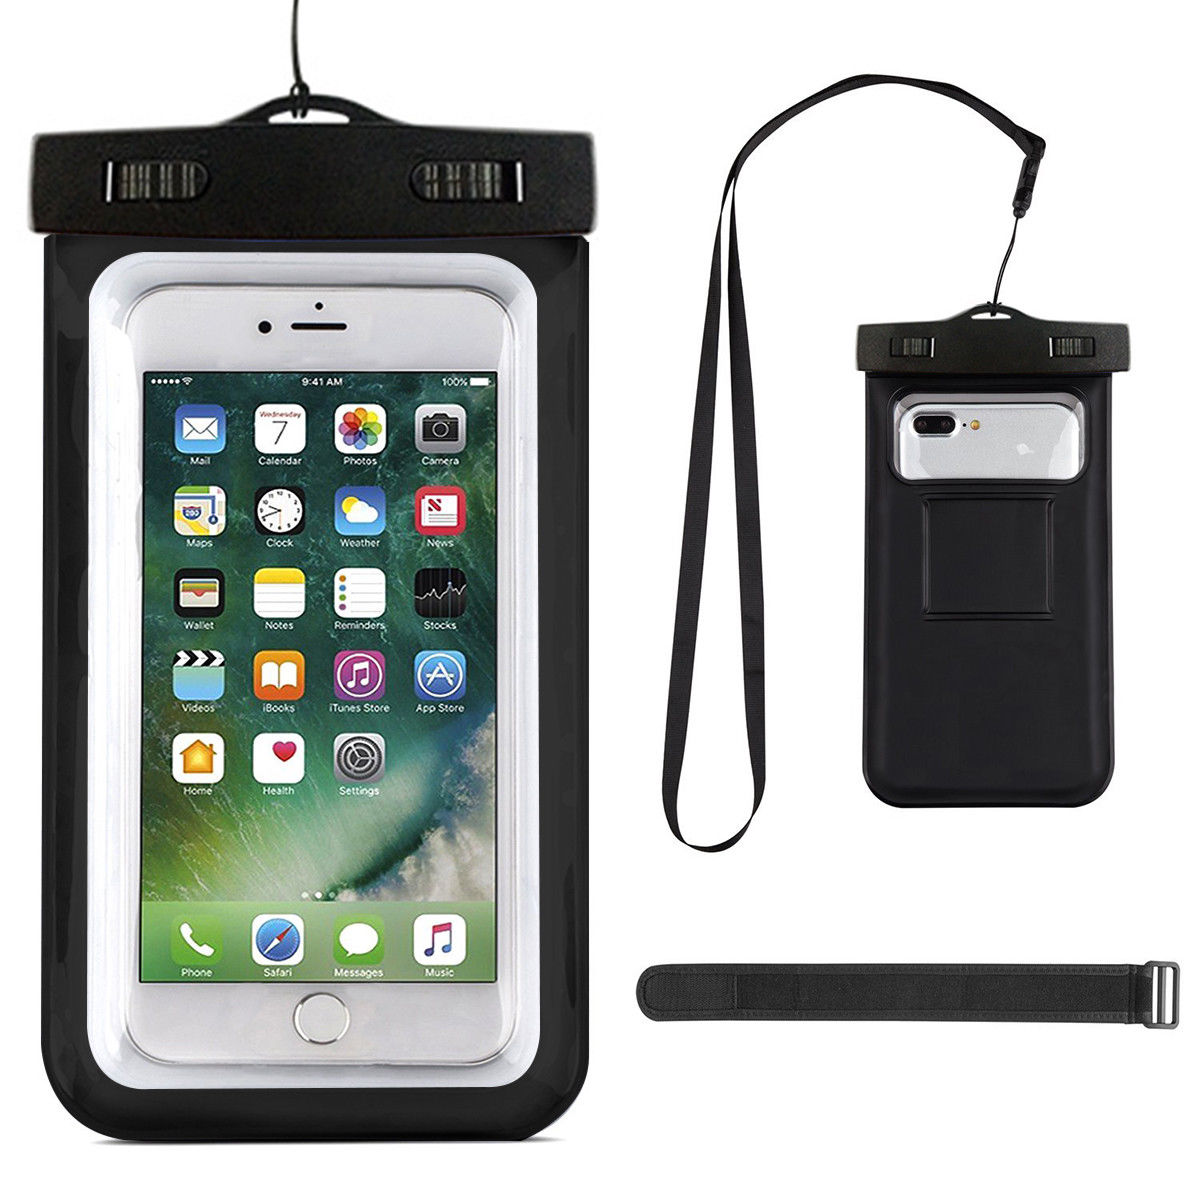 """Universal Waterproof Case, Mignova Cellphone Dry Bag Pouch with Lanyard Armband Strap for Apple iPhone X, 8, 7, 6 6s Plus Samsung Note 8 S8, S8 Plus S7, S7 Edge up to 6.0"""" diagonal (Black)"""